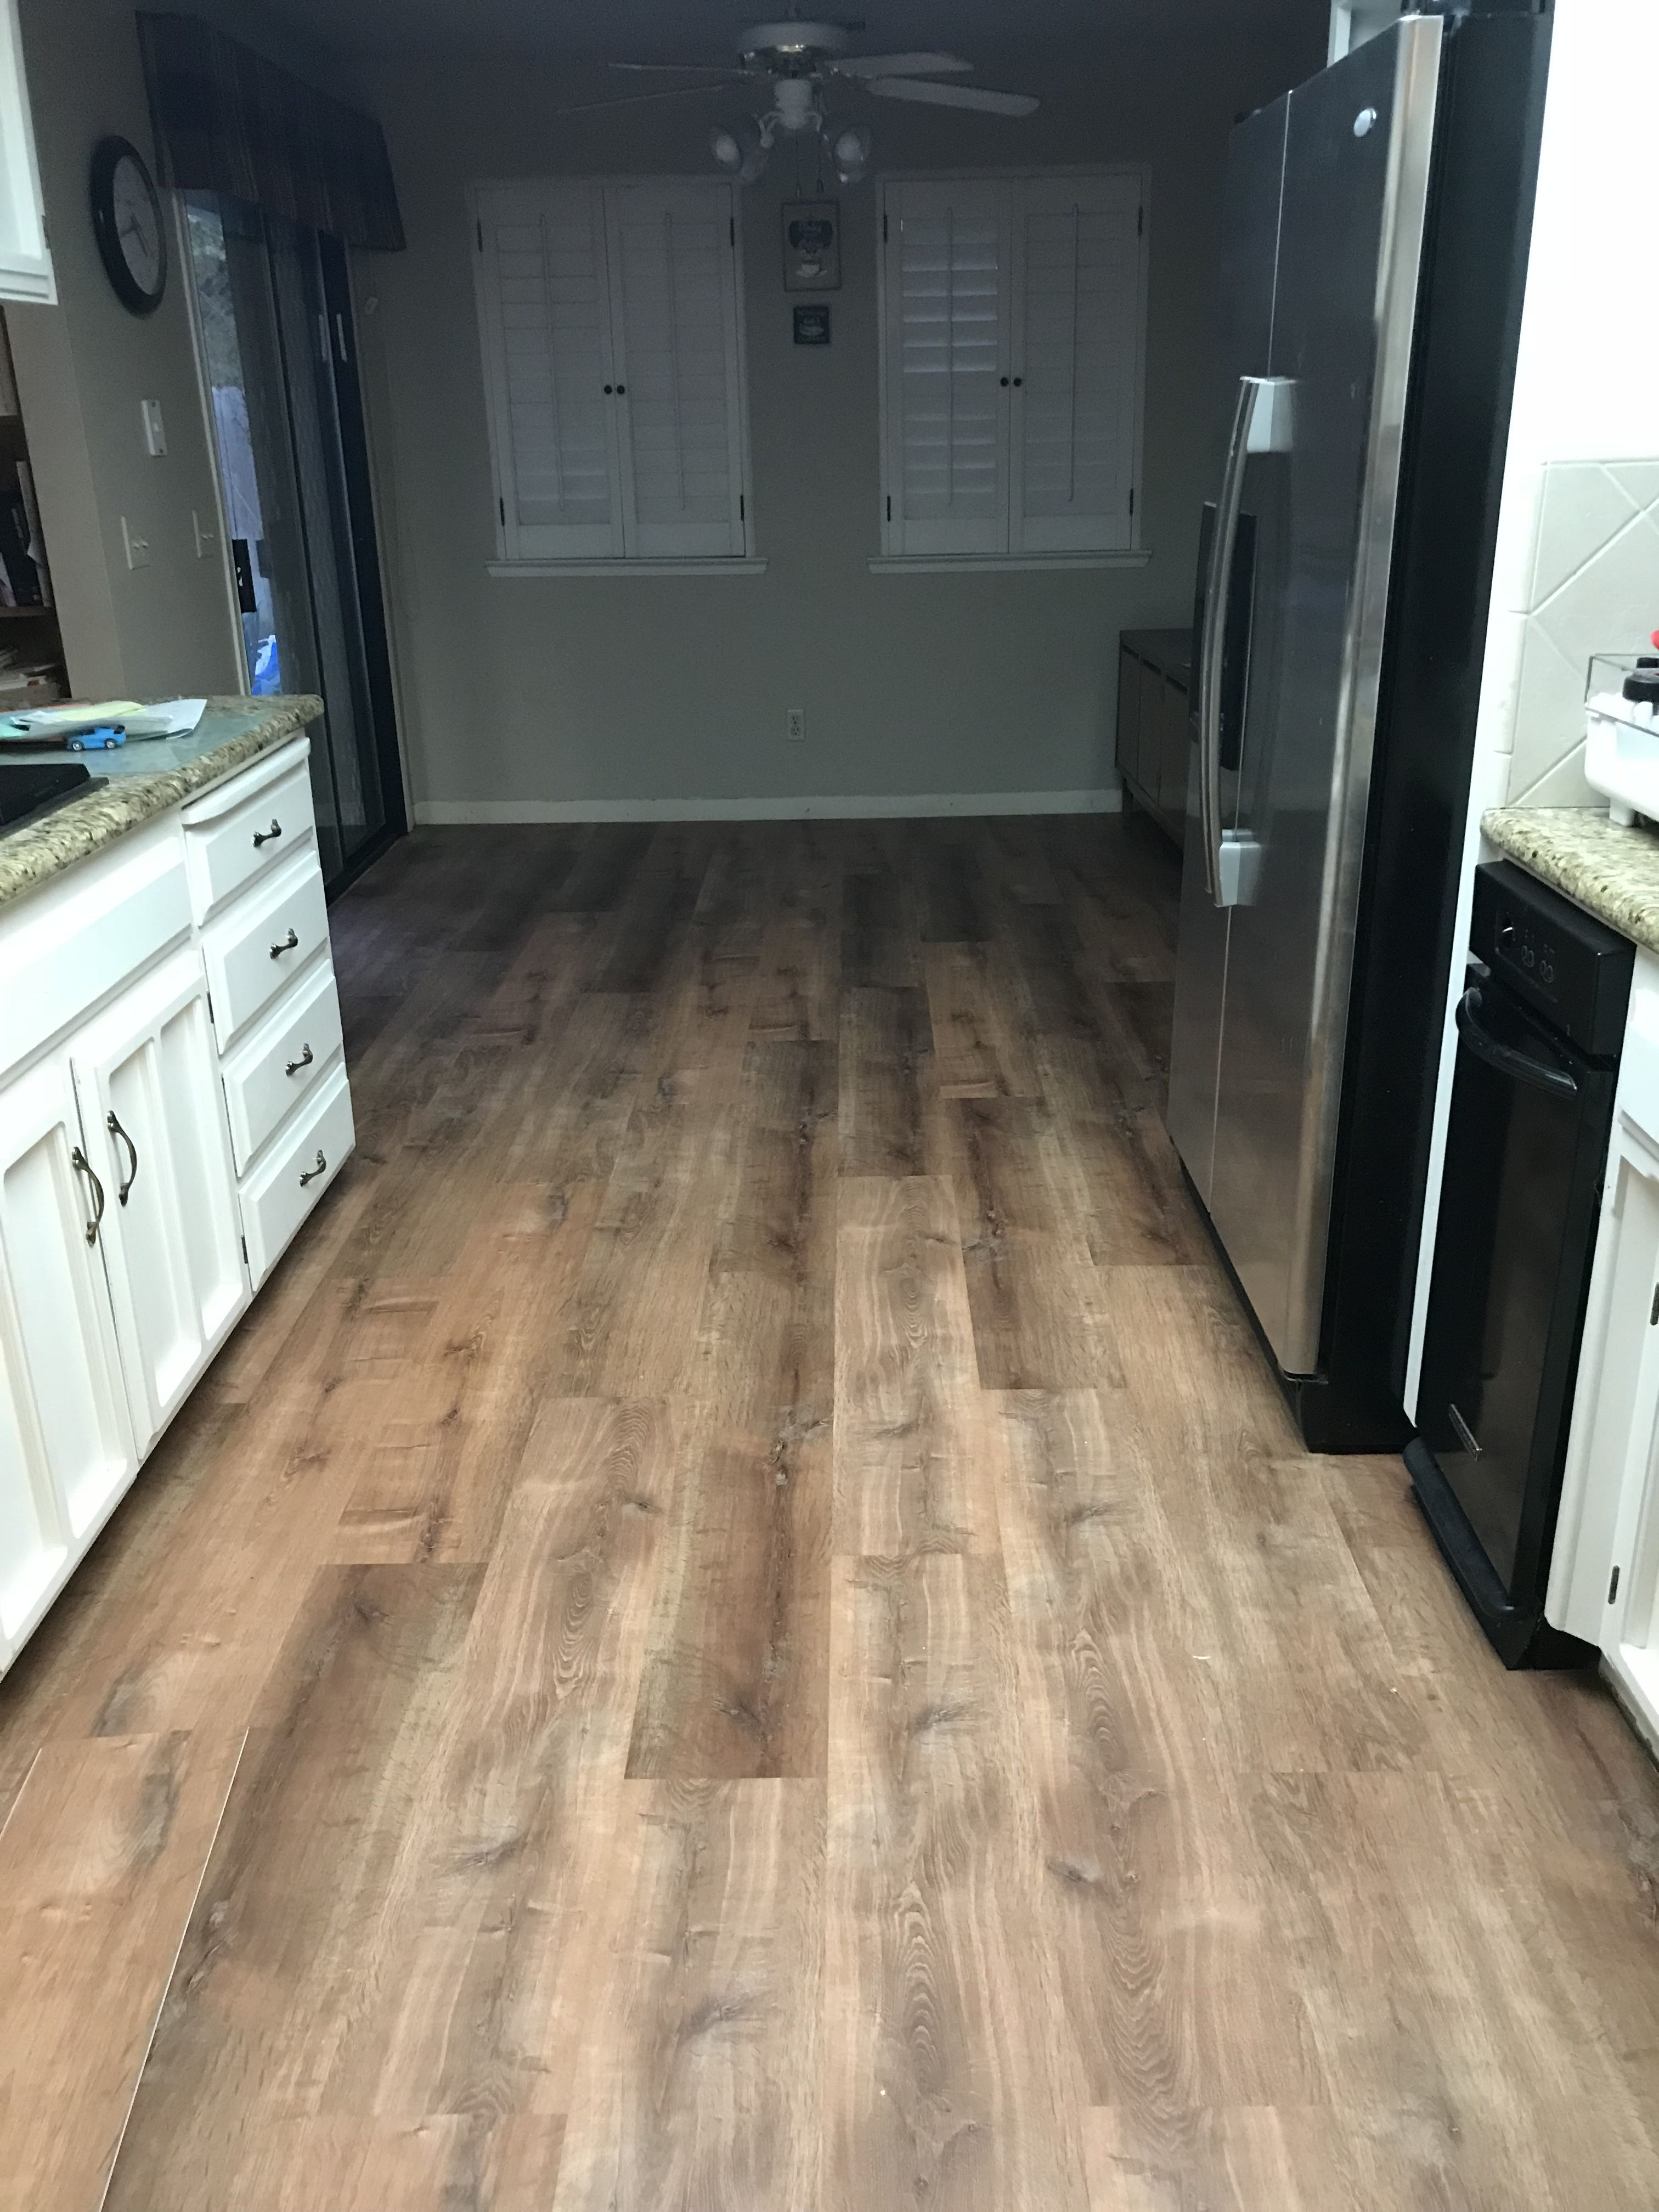 Find and save ideas about Waterproof laminate flooring on